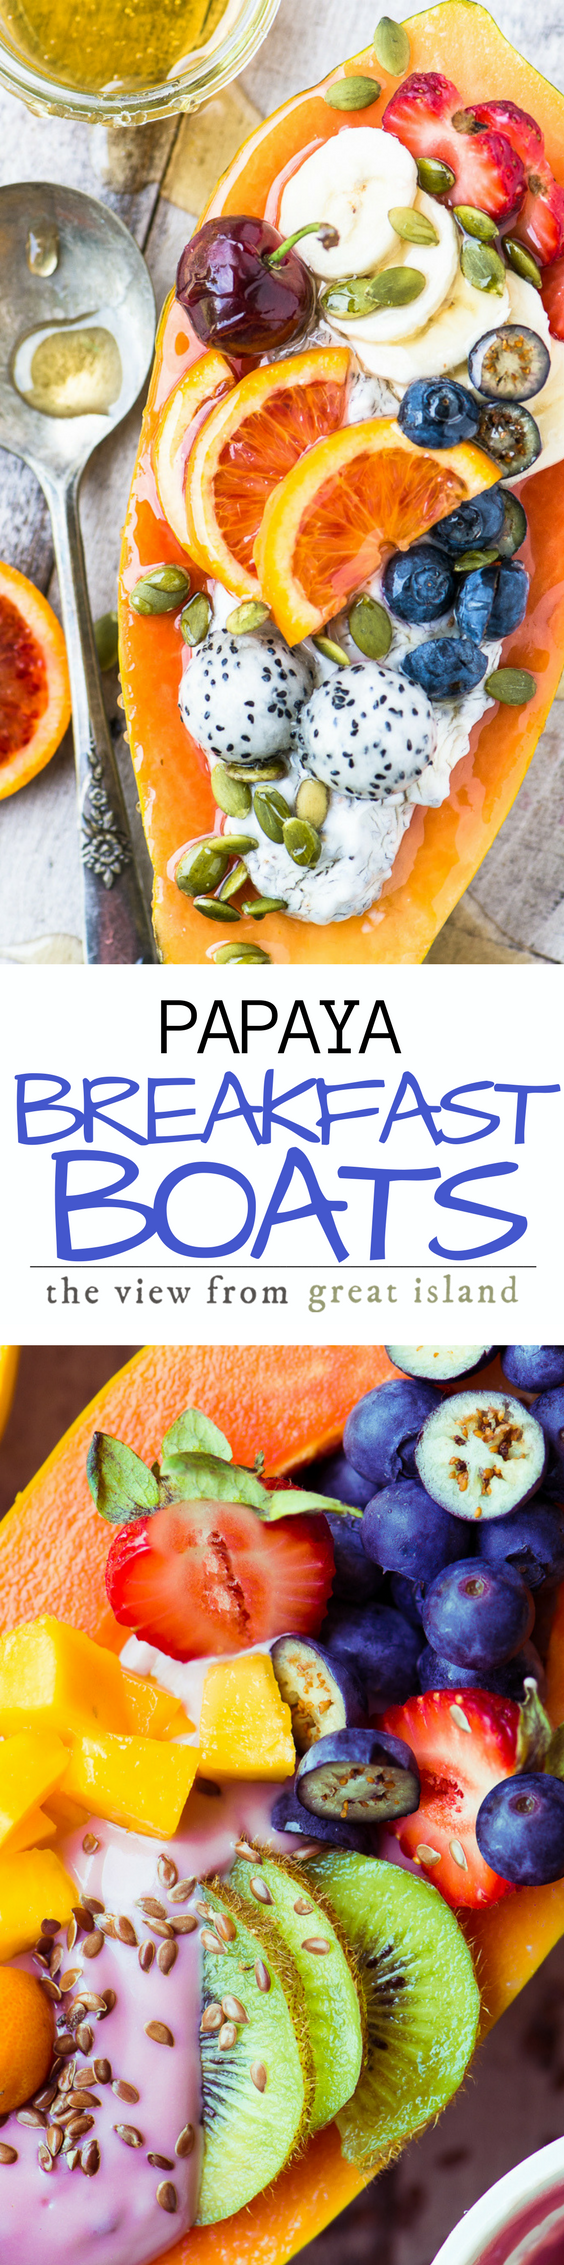 Papaya Breakfast Boats ~ breakfast just got a whole lot more interesting, with gorgeous tropical papaya filled to the brim with non dairy yogurt and colorful fresh fruit. #breakfastbowl #papaya #healthy #yogurt #glutenfree #whole30 #protein #recipe #easy #brunch #fruit #recipe #benefits #smoothie #smoothiebowl